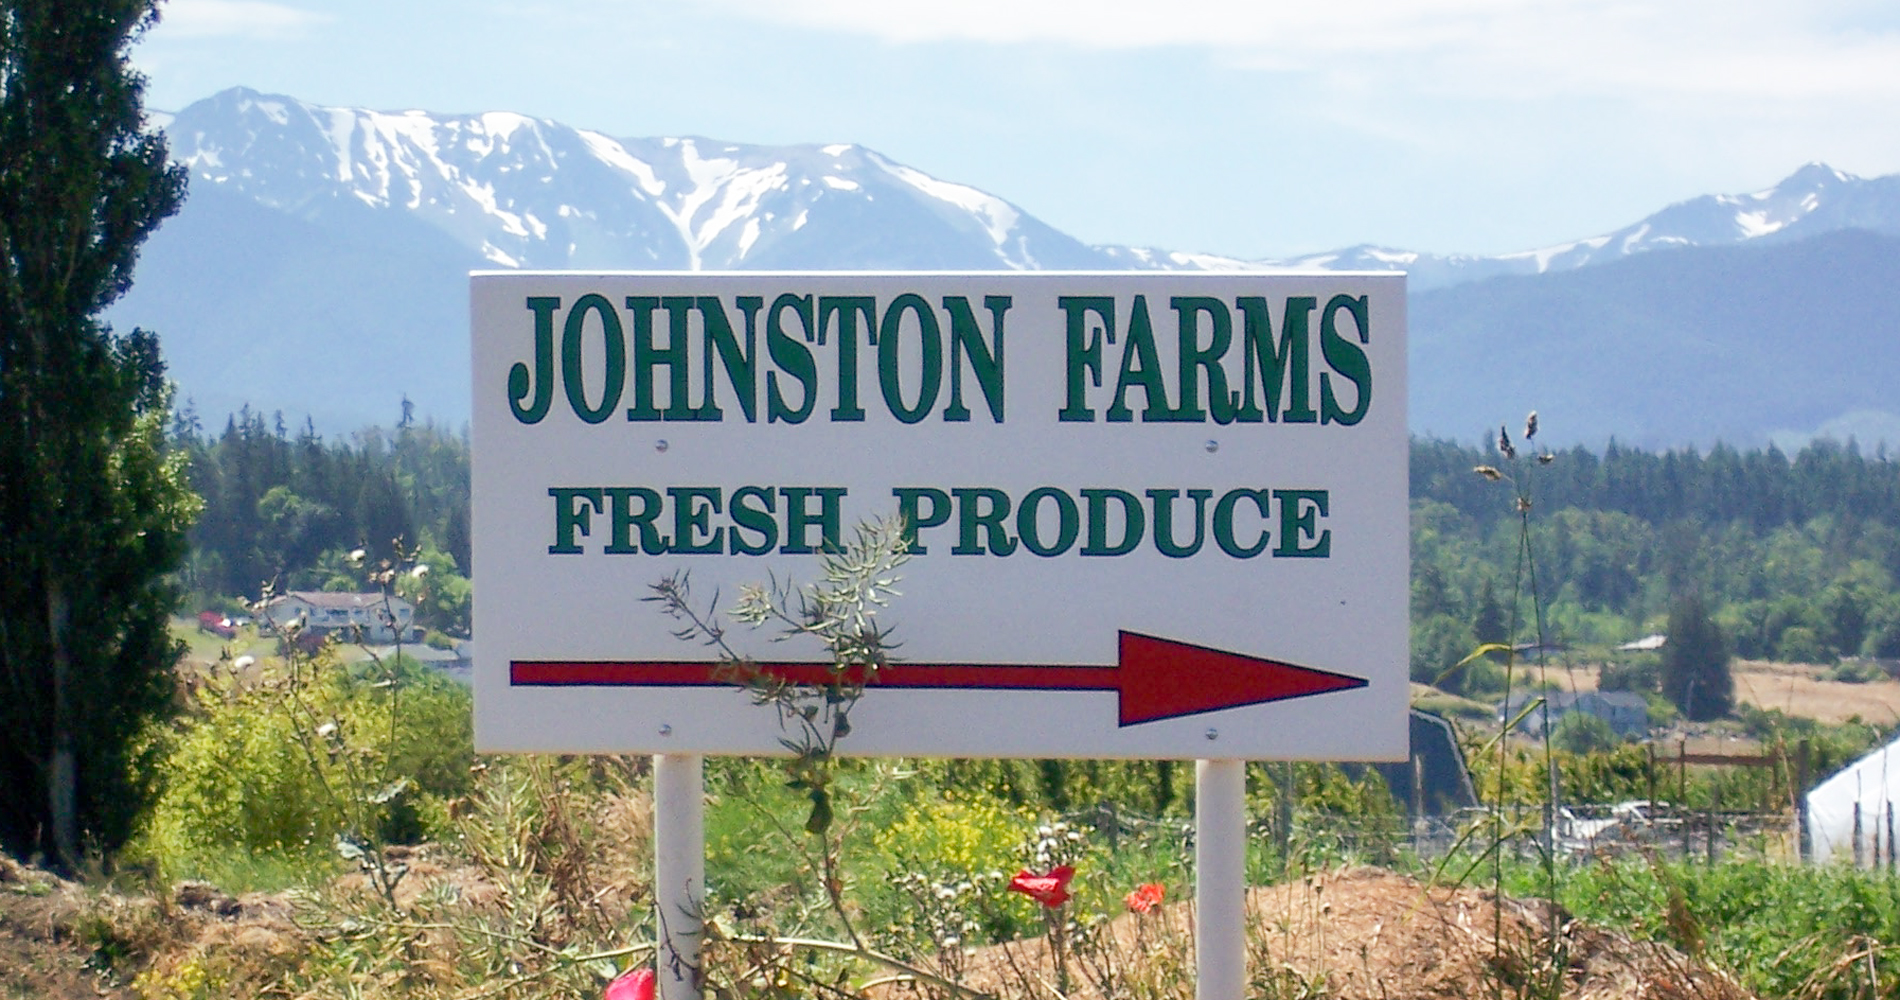 johnston-farms-sign-1900X1000